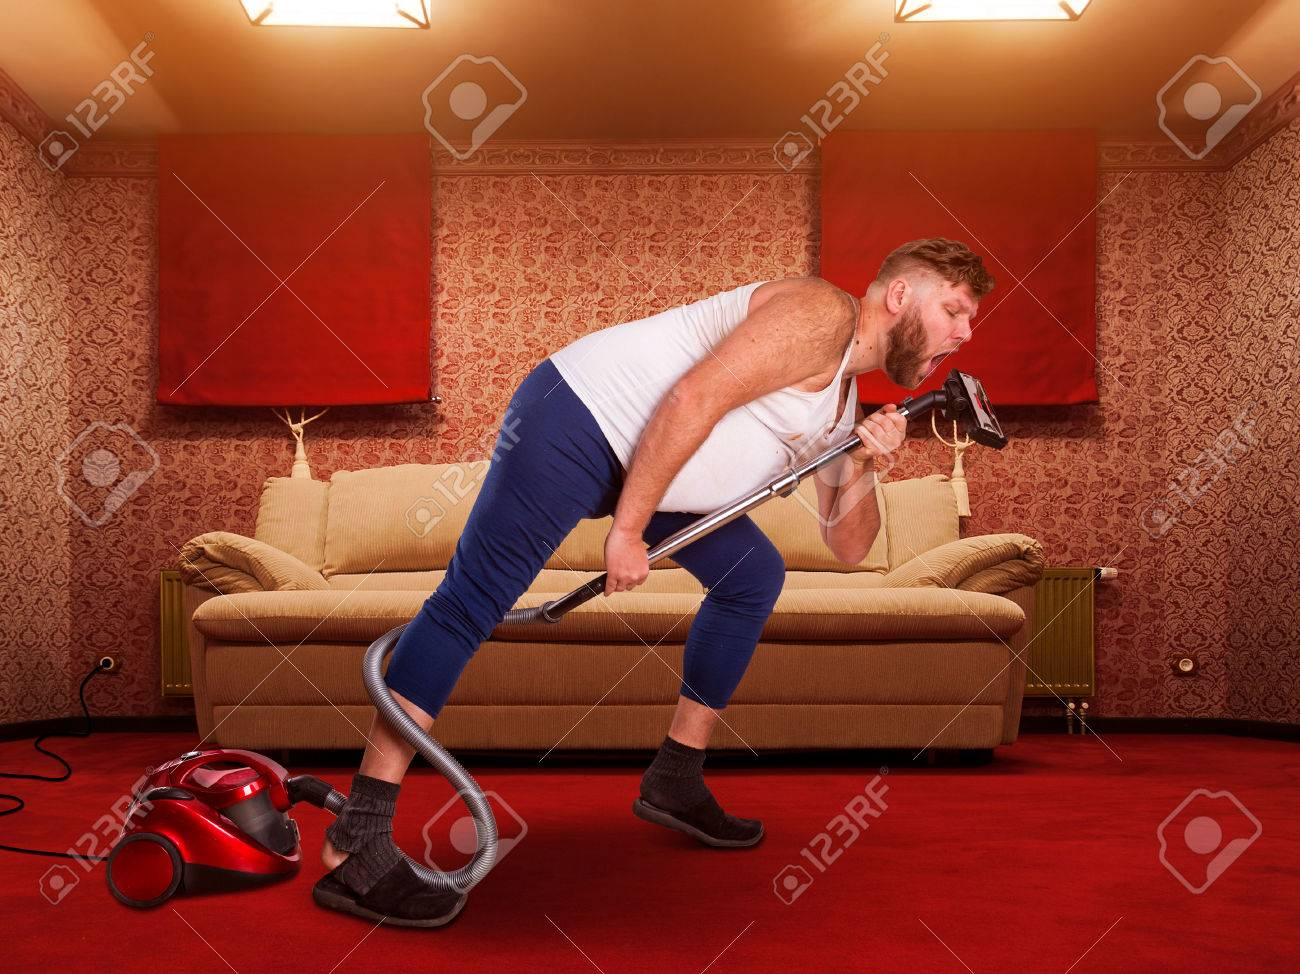 Adult man sings to the vacuum cleaner at home interior Stock Photo - 38337853